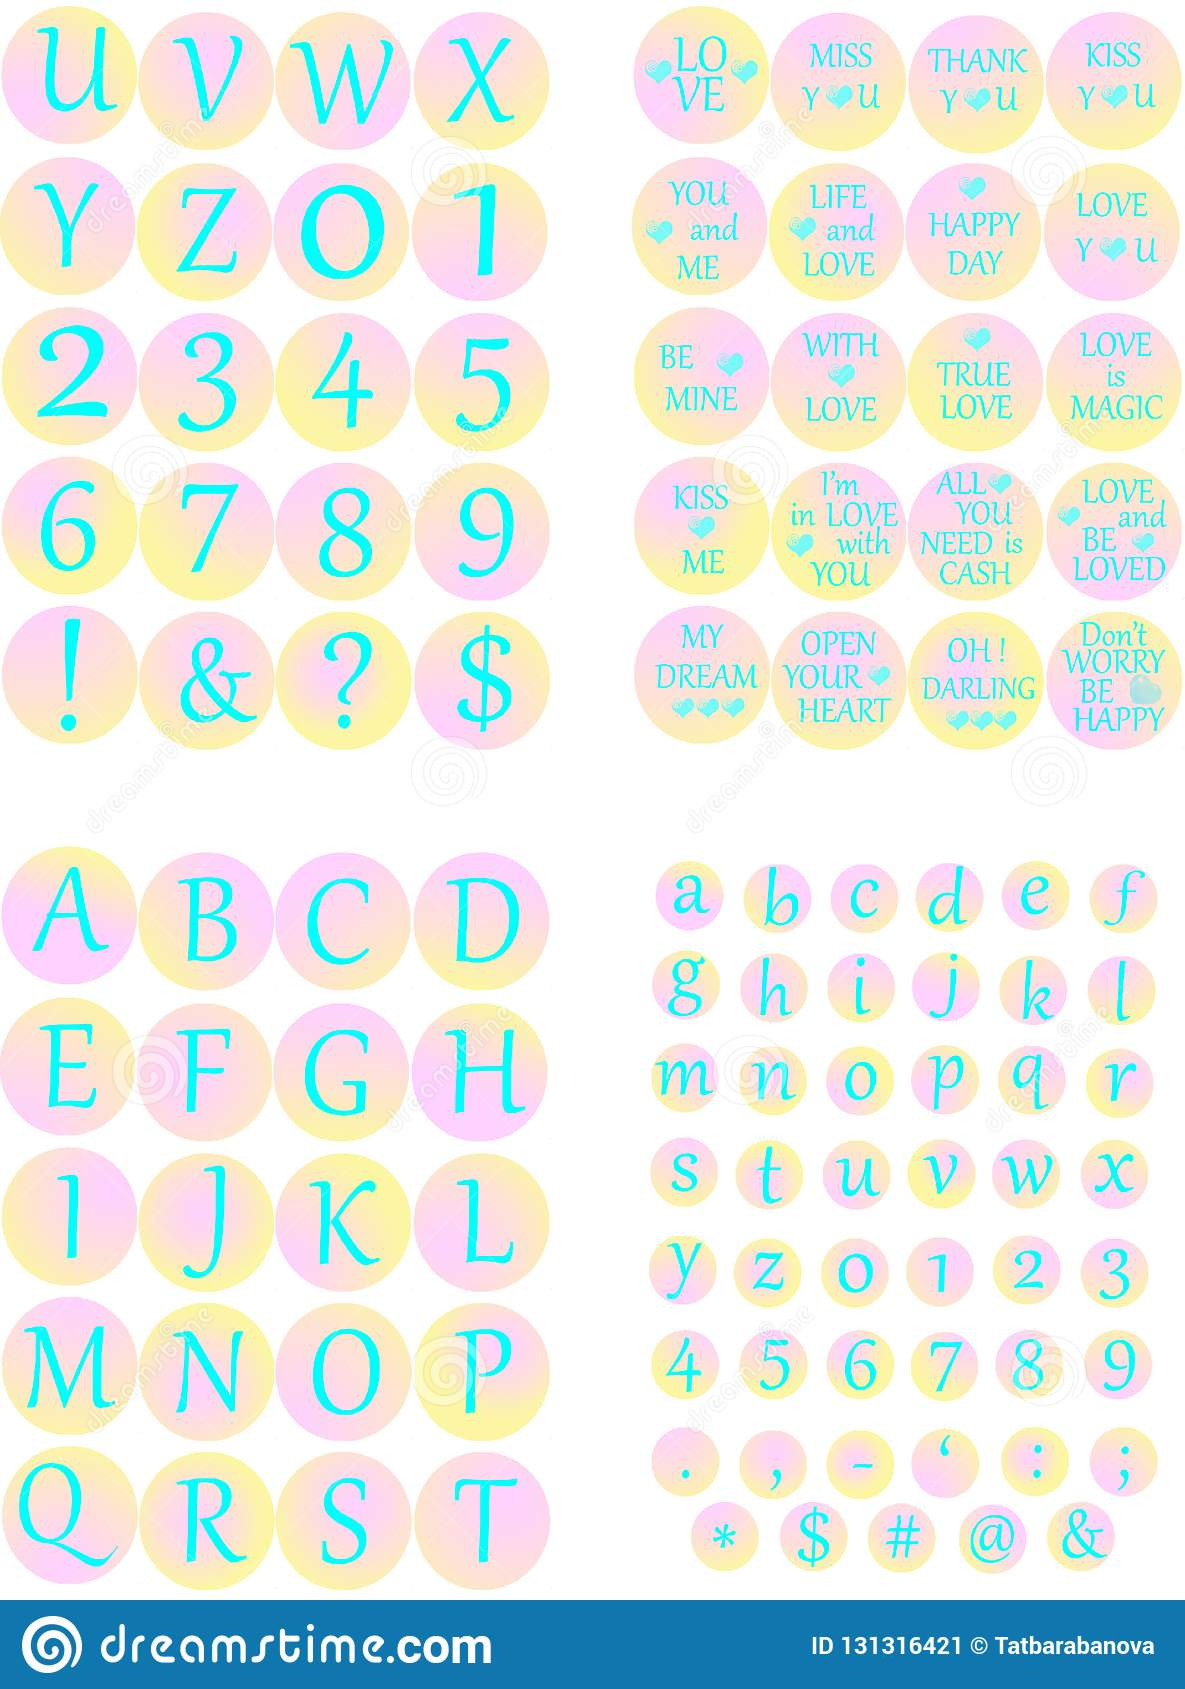 image about Printable Circles titled Electronic Alphabet Printable Circles Enjoy Phrases Glamorous